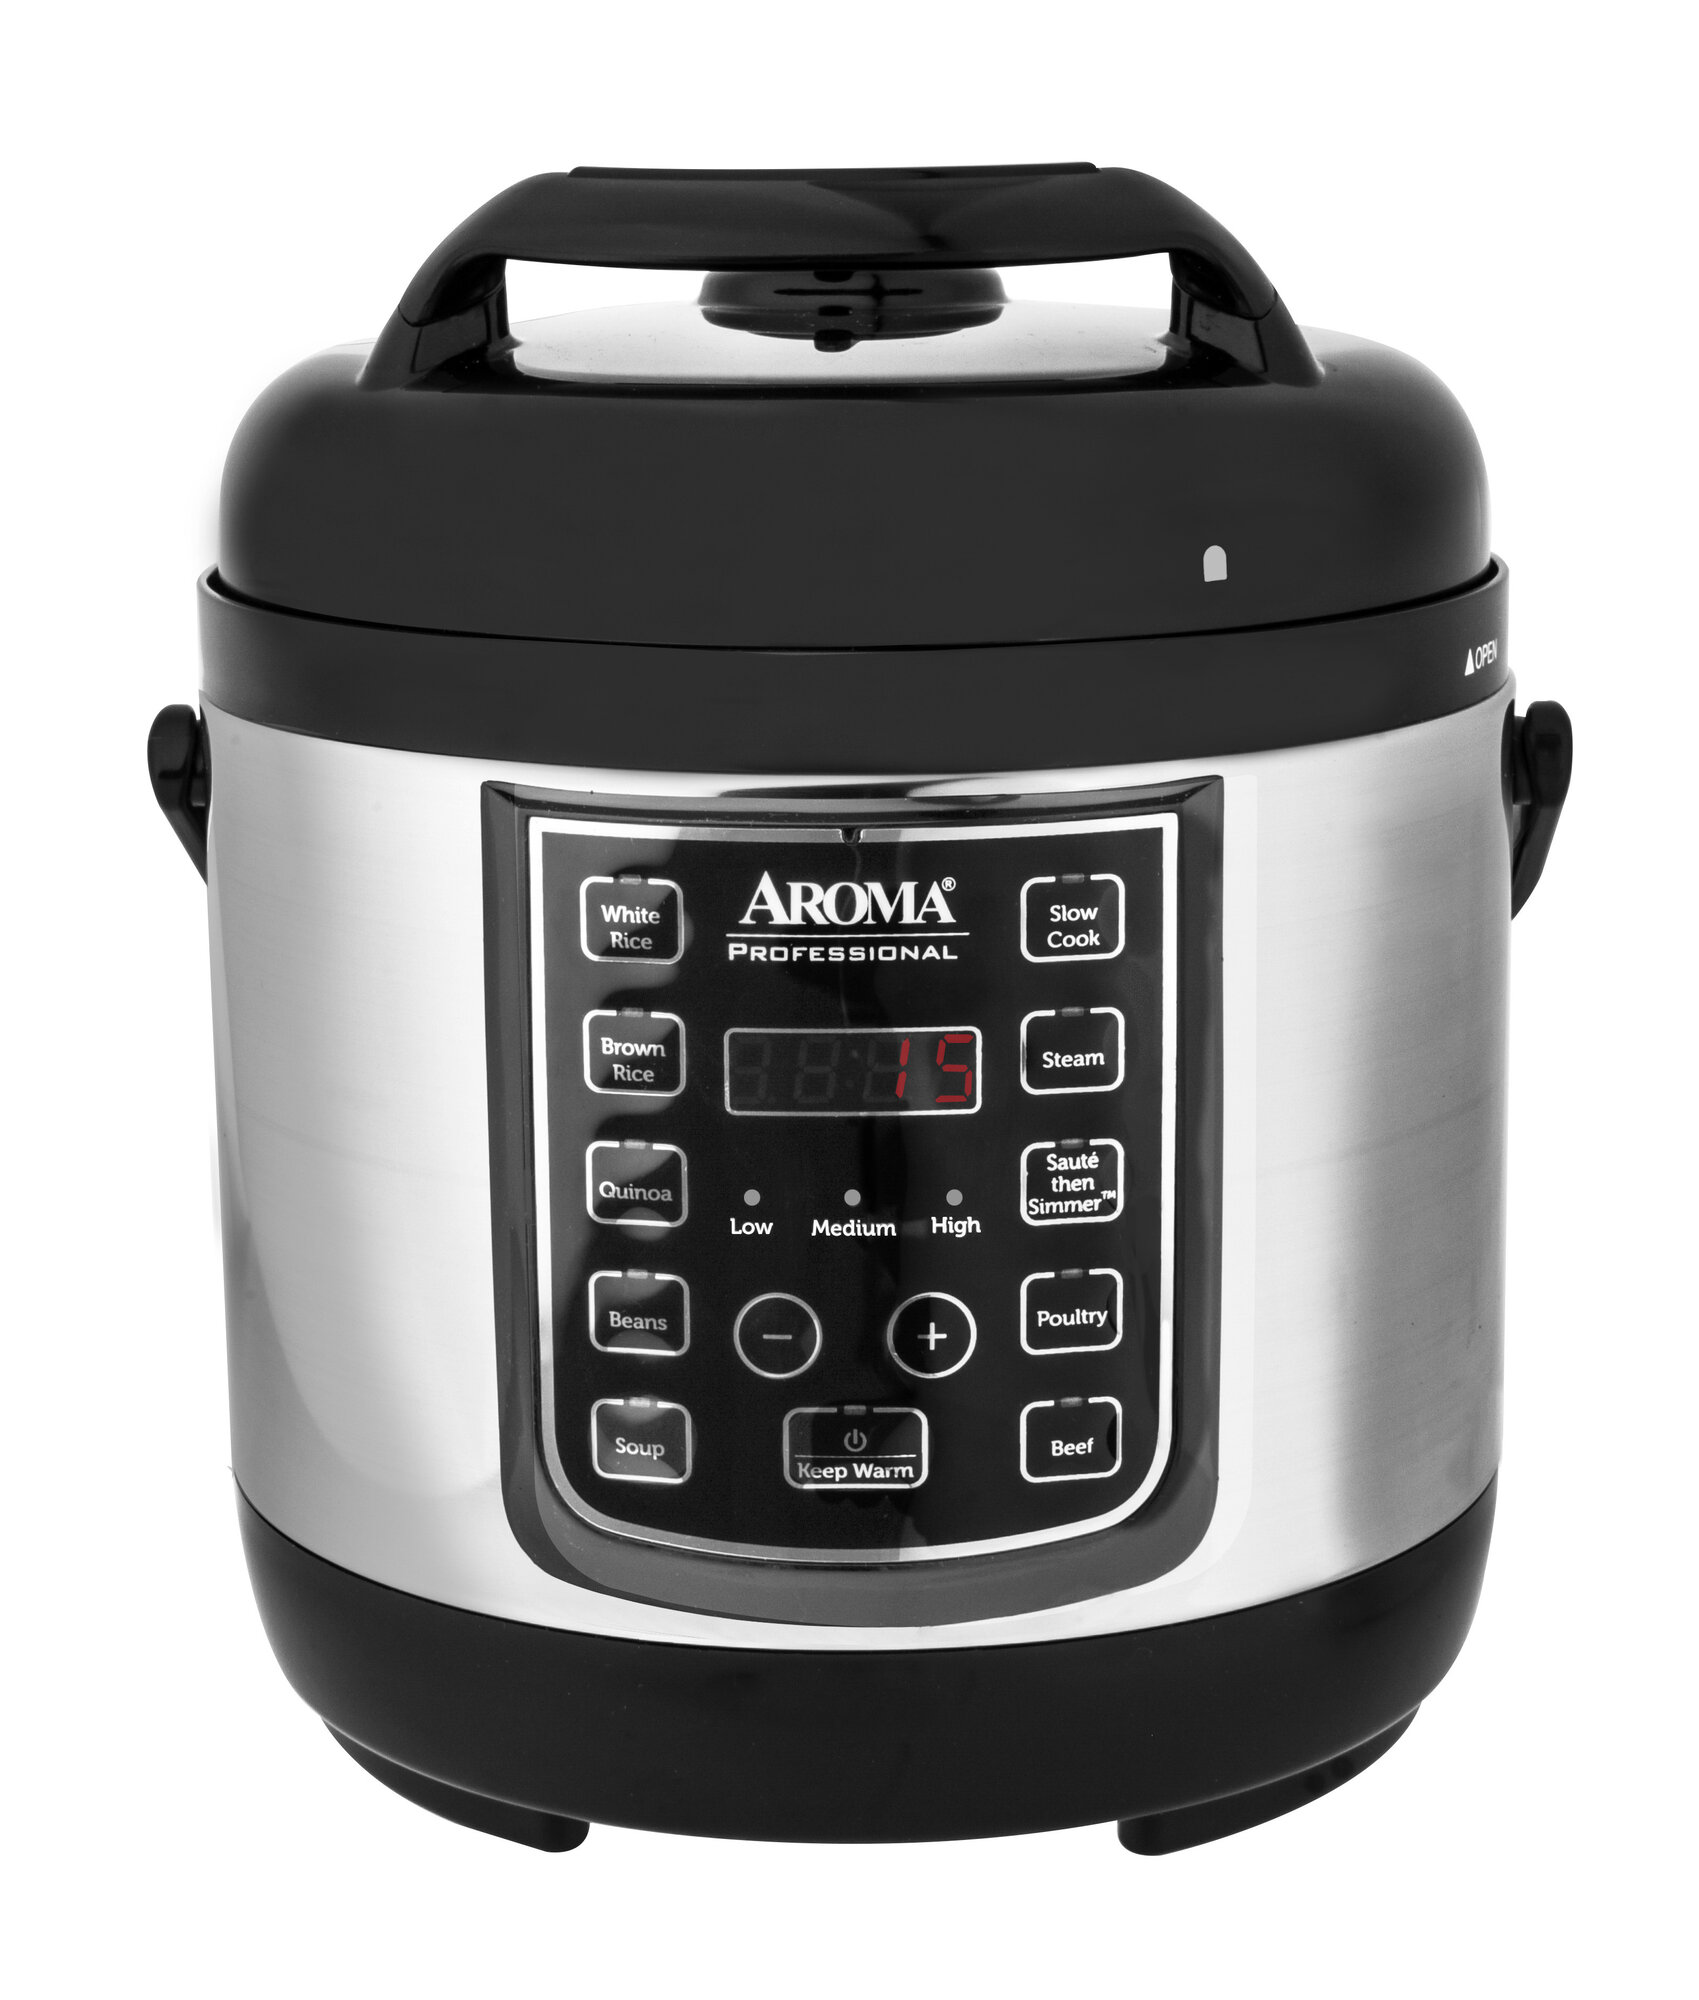 Power Cooker Digital Pressure Cooker ~ Aroma quart professional digital pressure cooker ebay